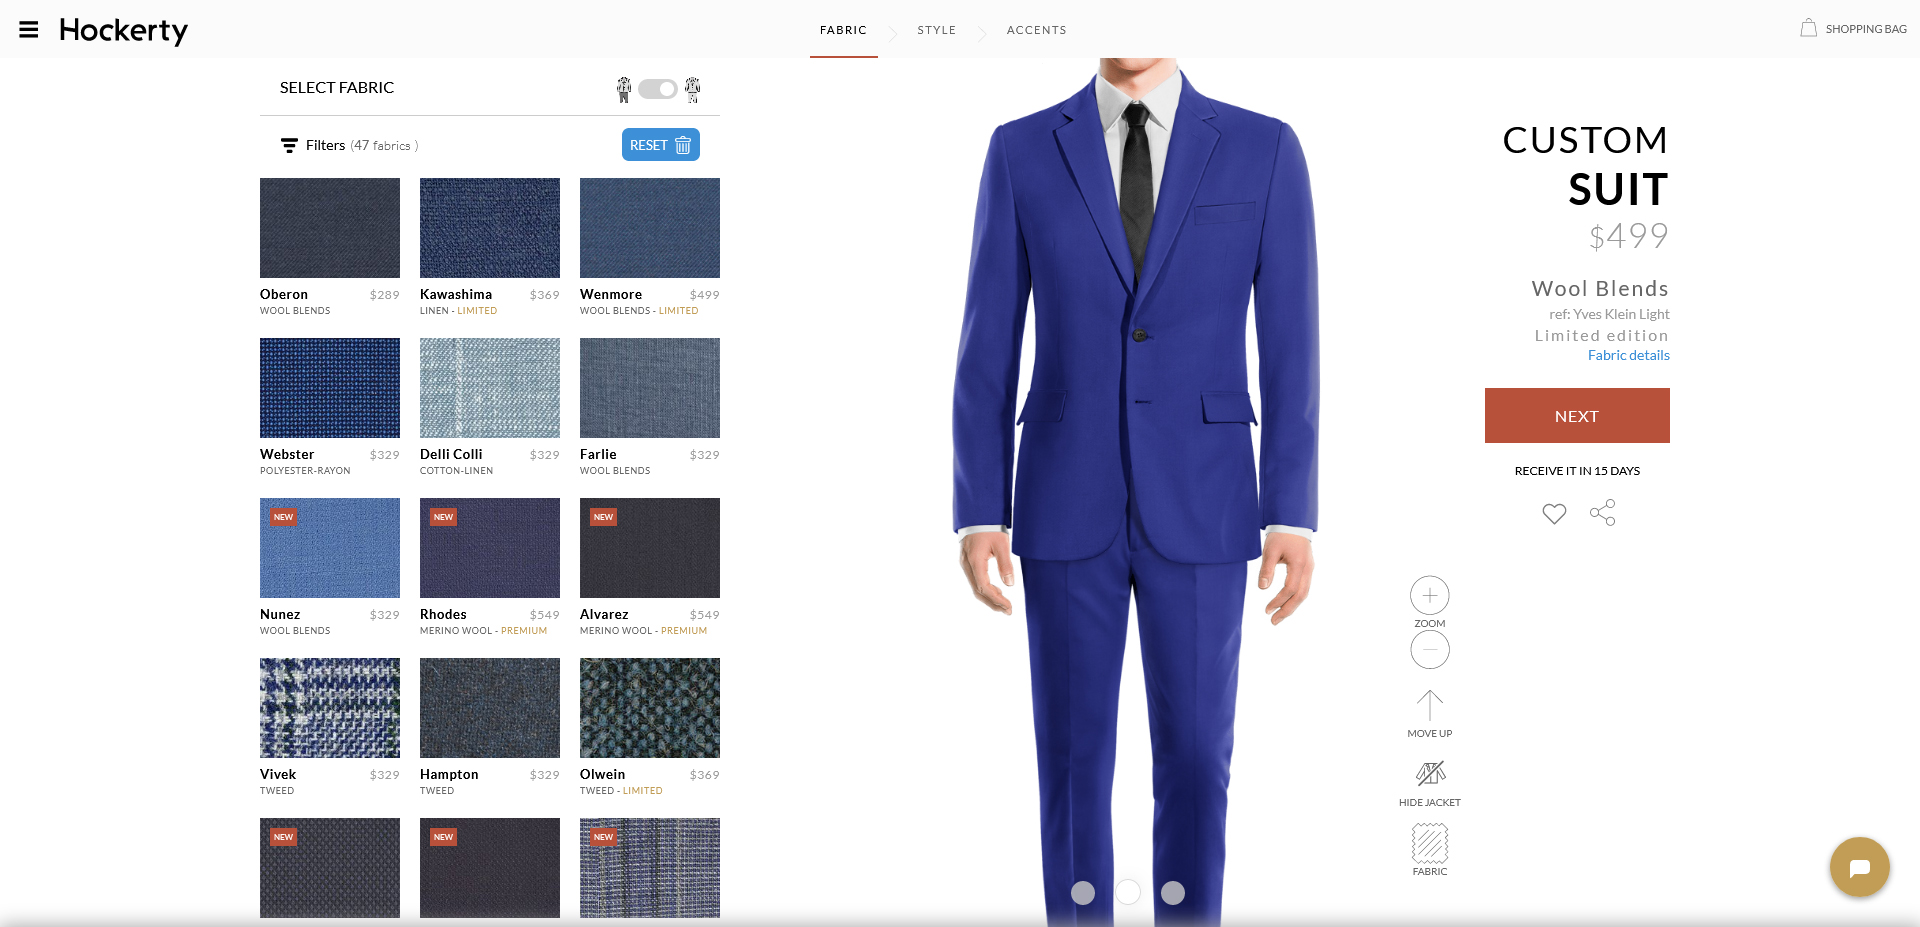 yves klein: blue suit fabric from Hockerty